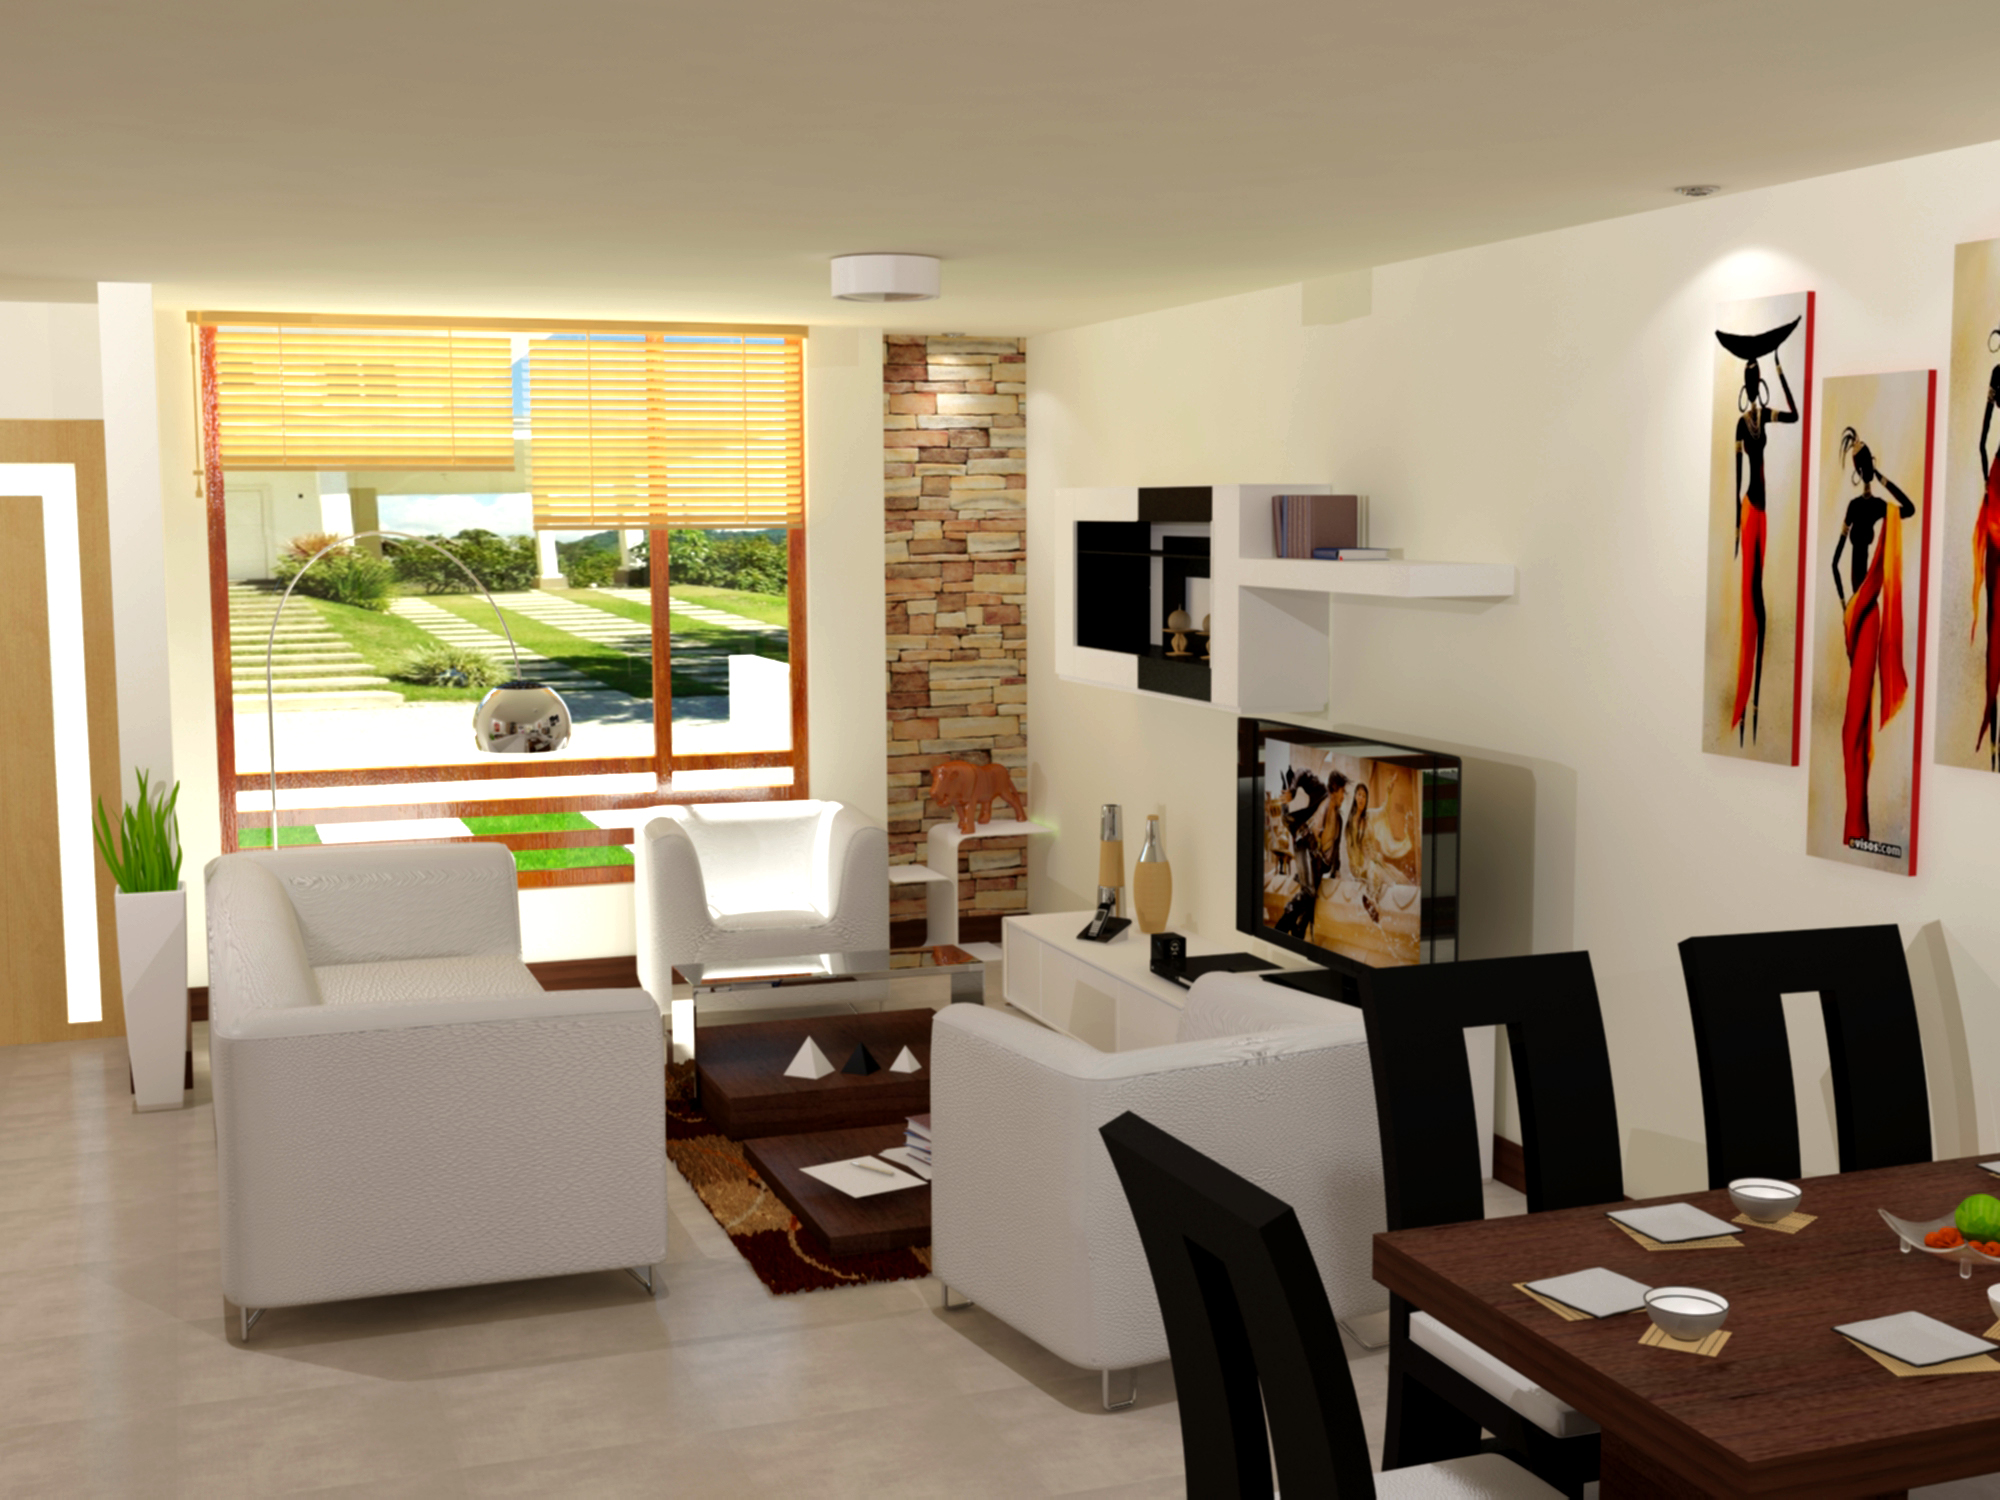 Ideas para decorar casas ideas para decorar tu casa with ideas para decorar casas gallery of - Ideas decoracion casa ...